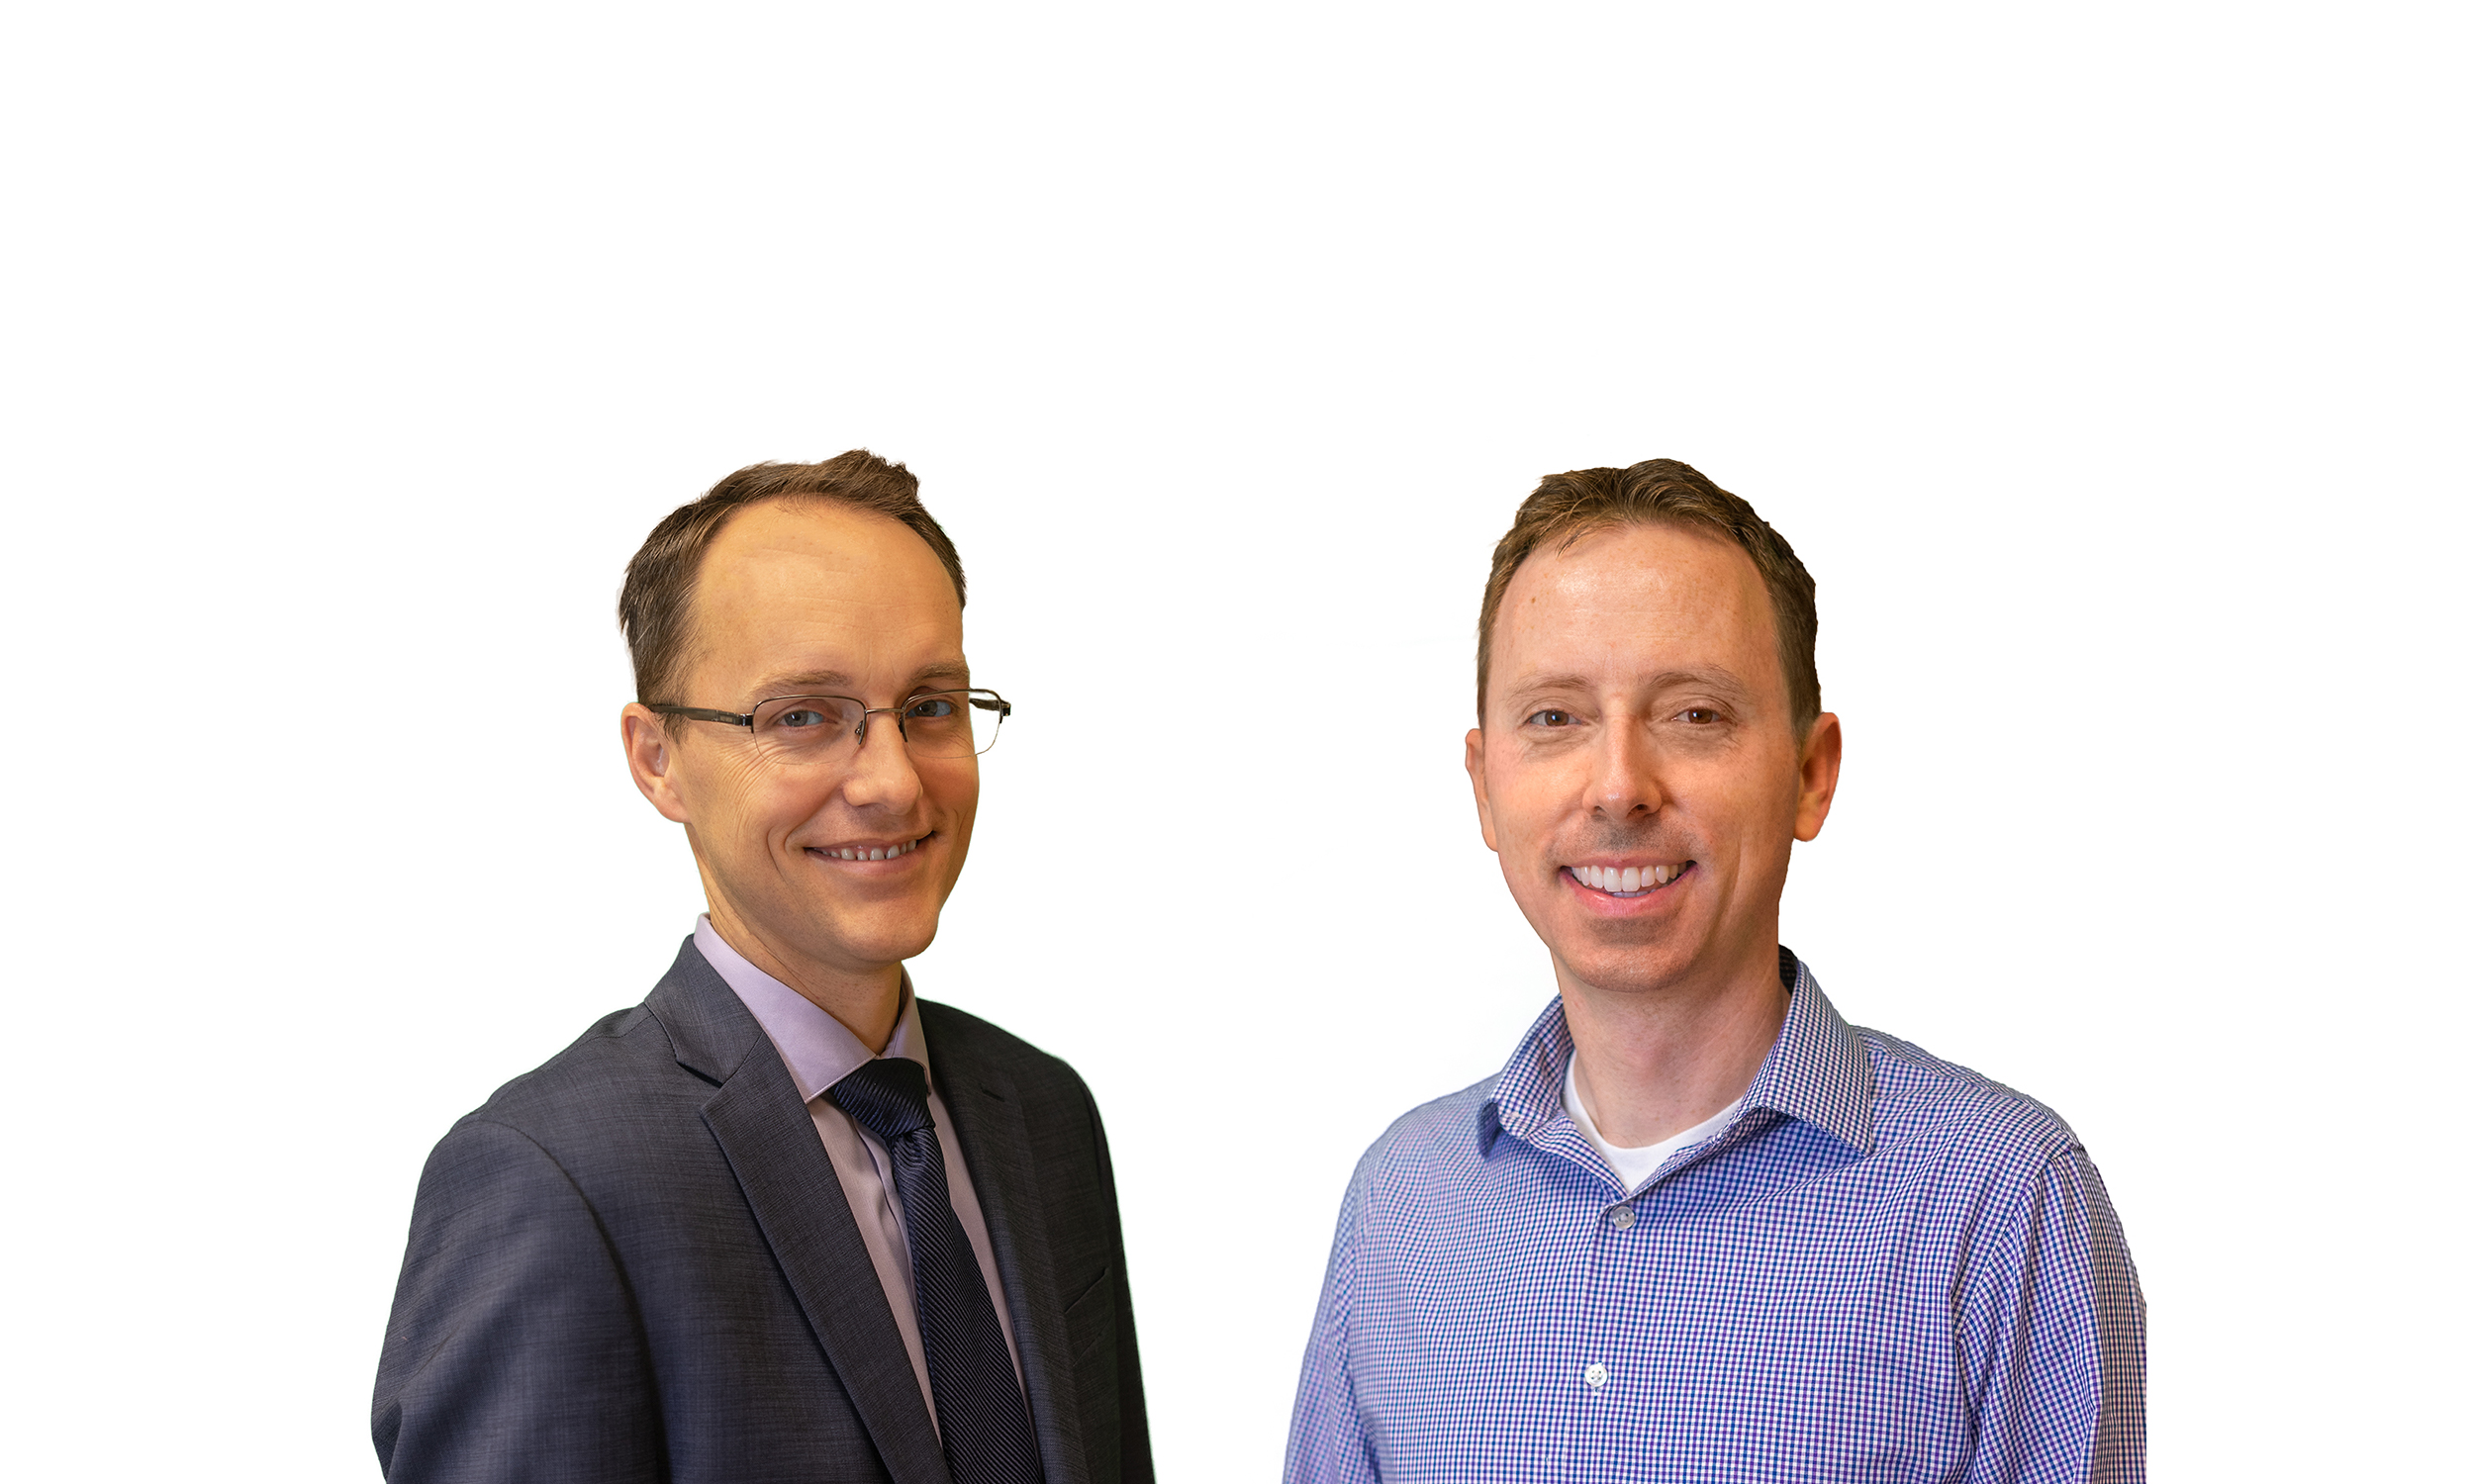 Now that you've met our team, - Get to know our Doctors!